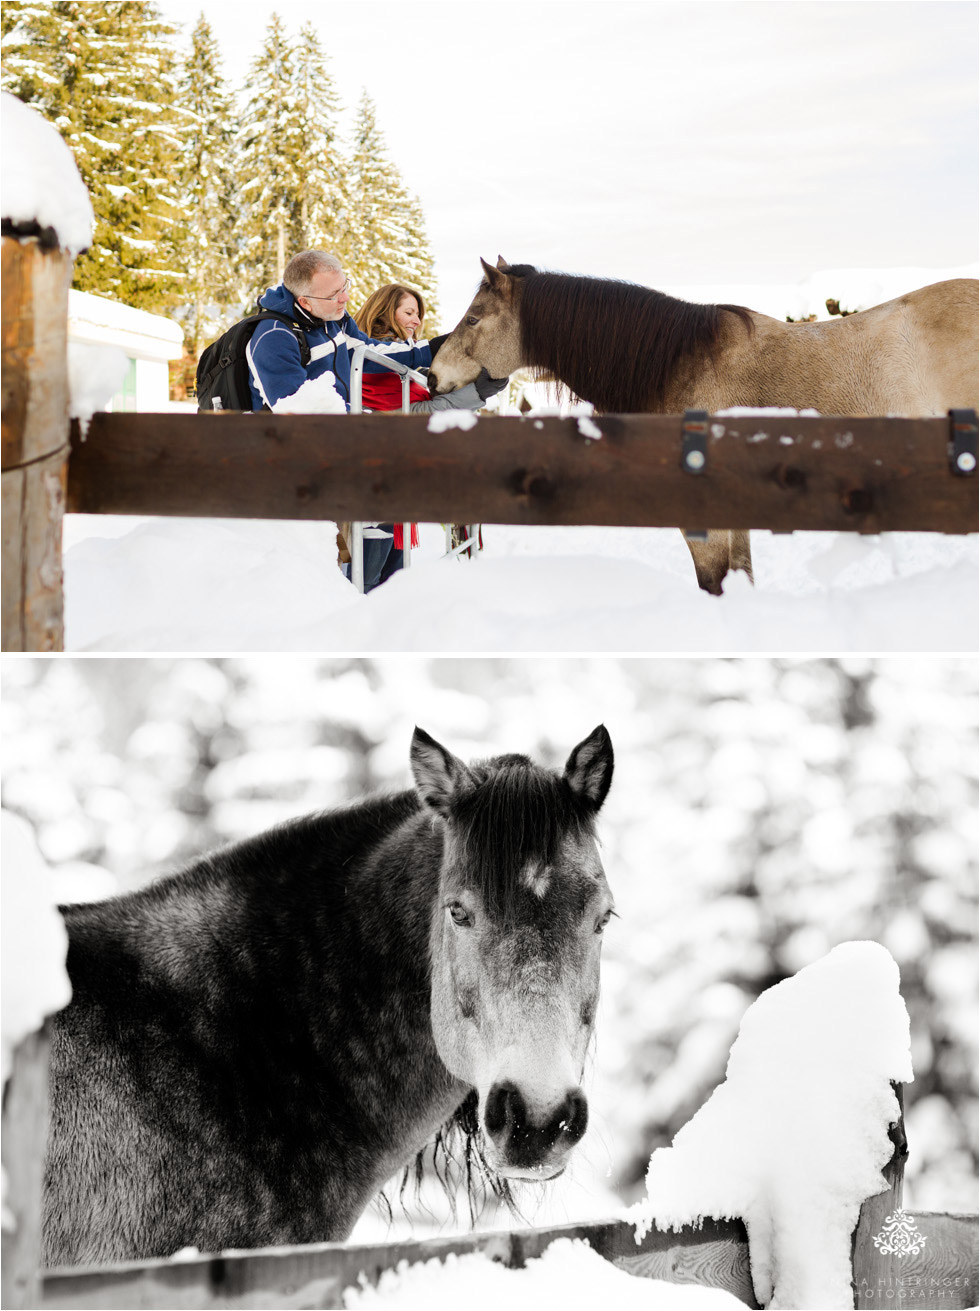 sleigh ride with horses at st. anton am arlberg - Blog of Nina Hintringer Photography - Wedding Photography, Wedding Reportage and Destination Weddings